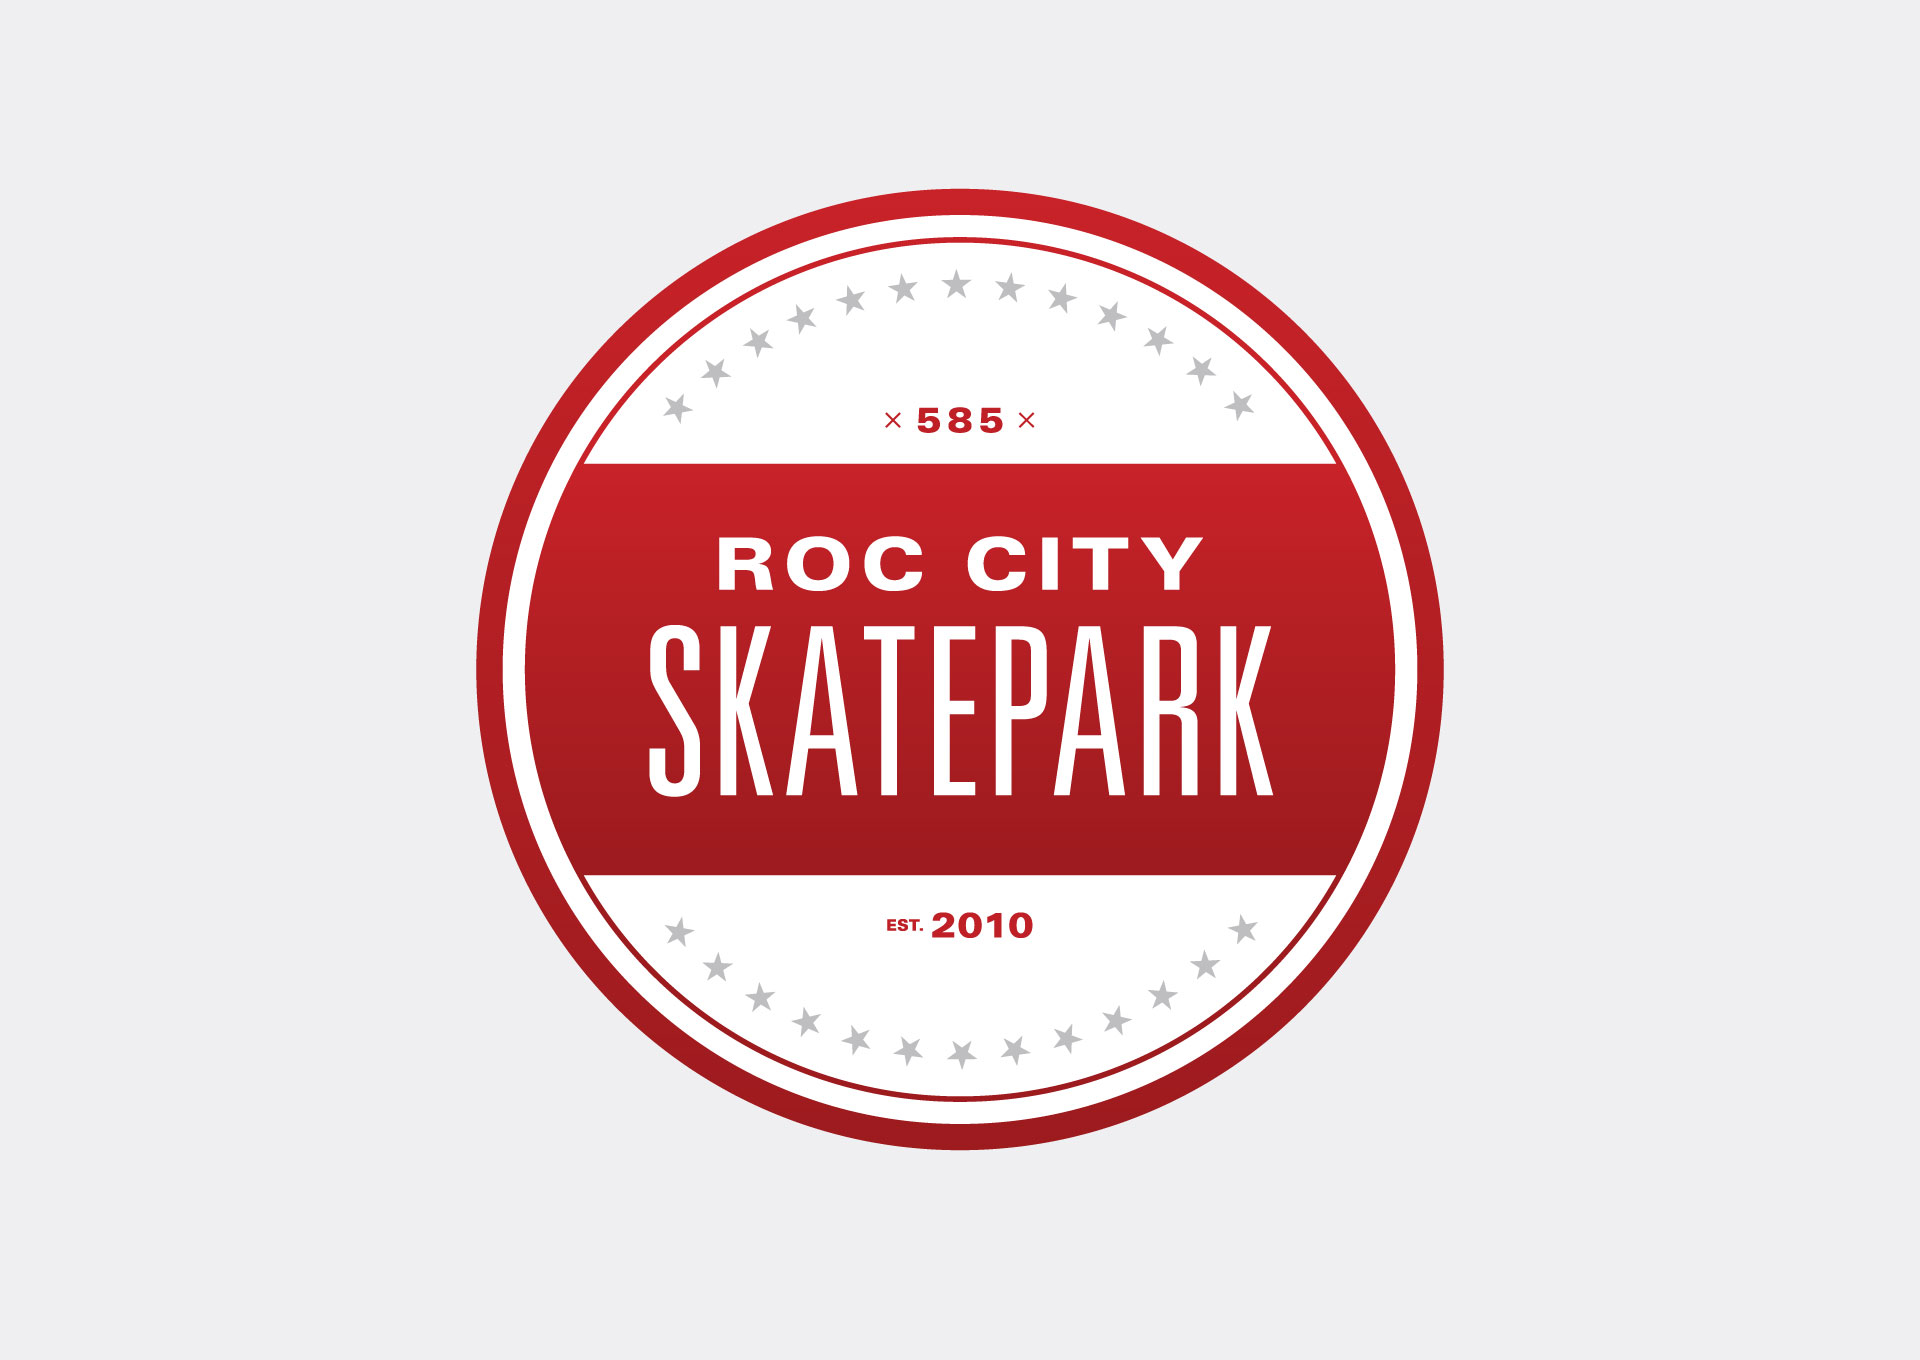 Roc City Skatepark